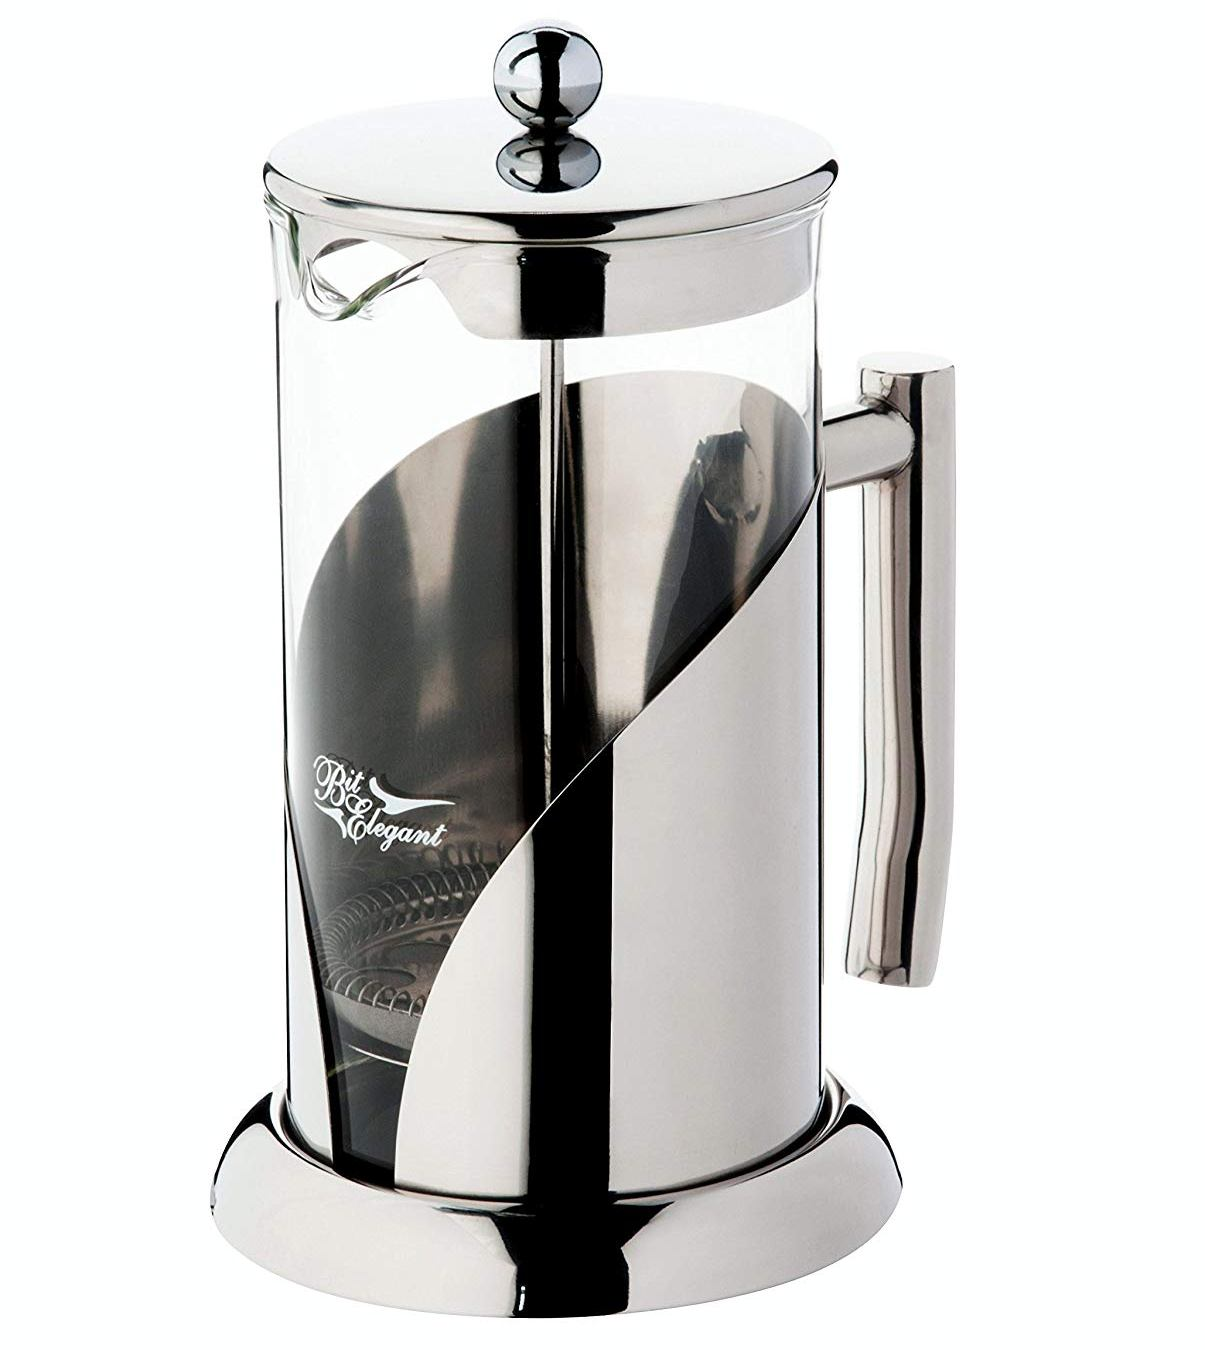 BitElegant French Press